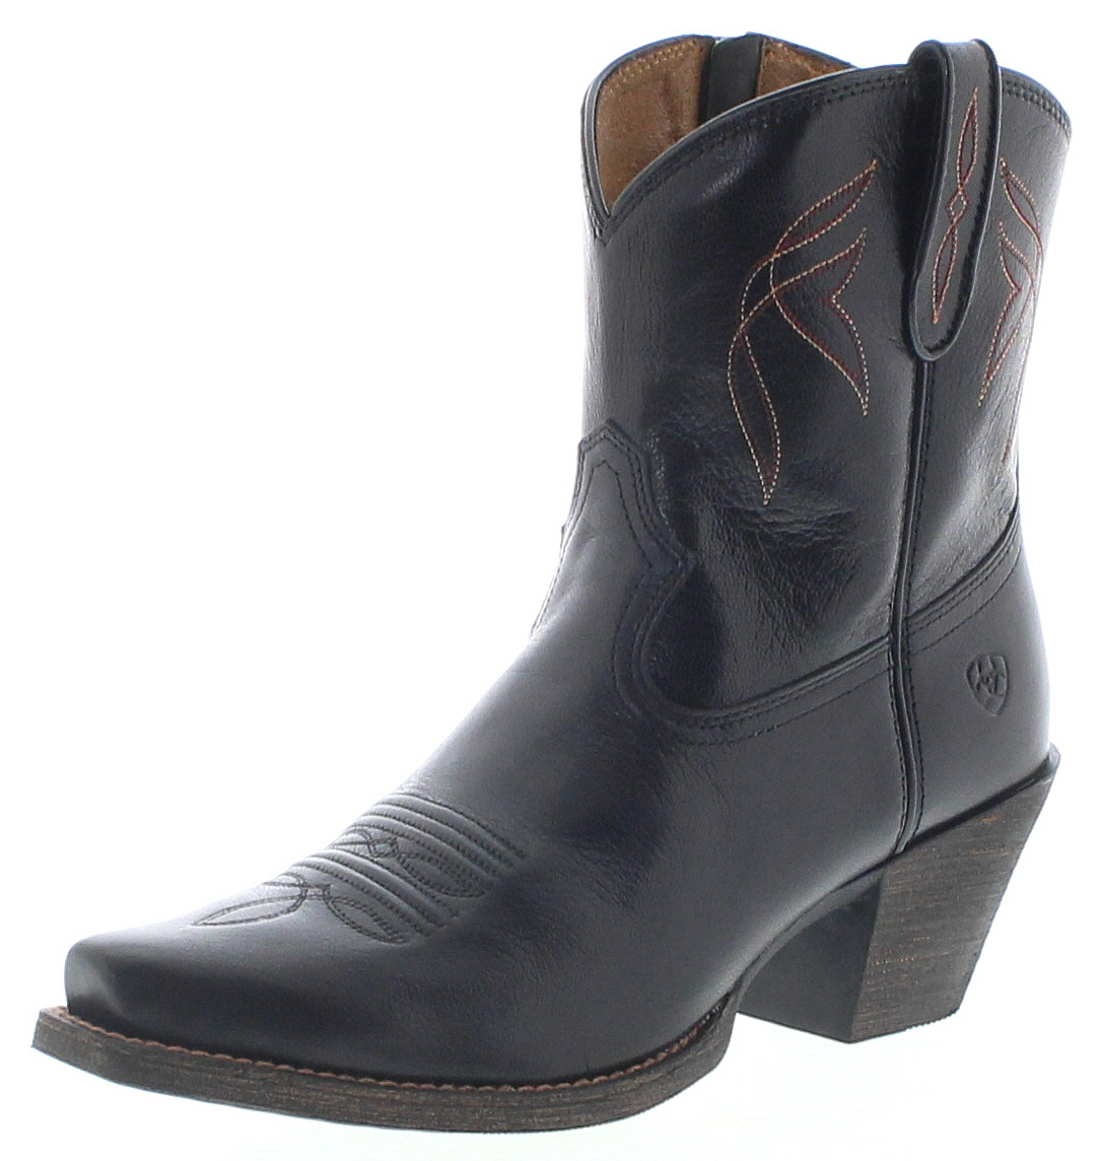 Ariat 27262 LOVELY Jackal Ankle Boots Ladies Black - black